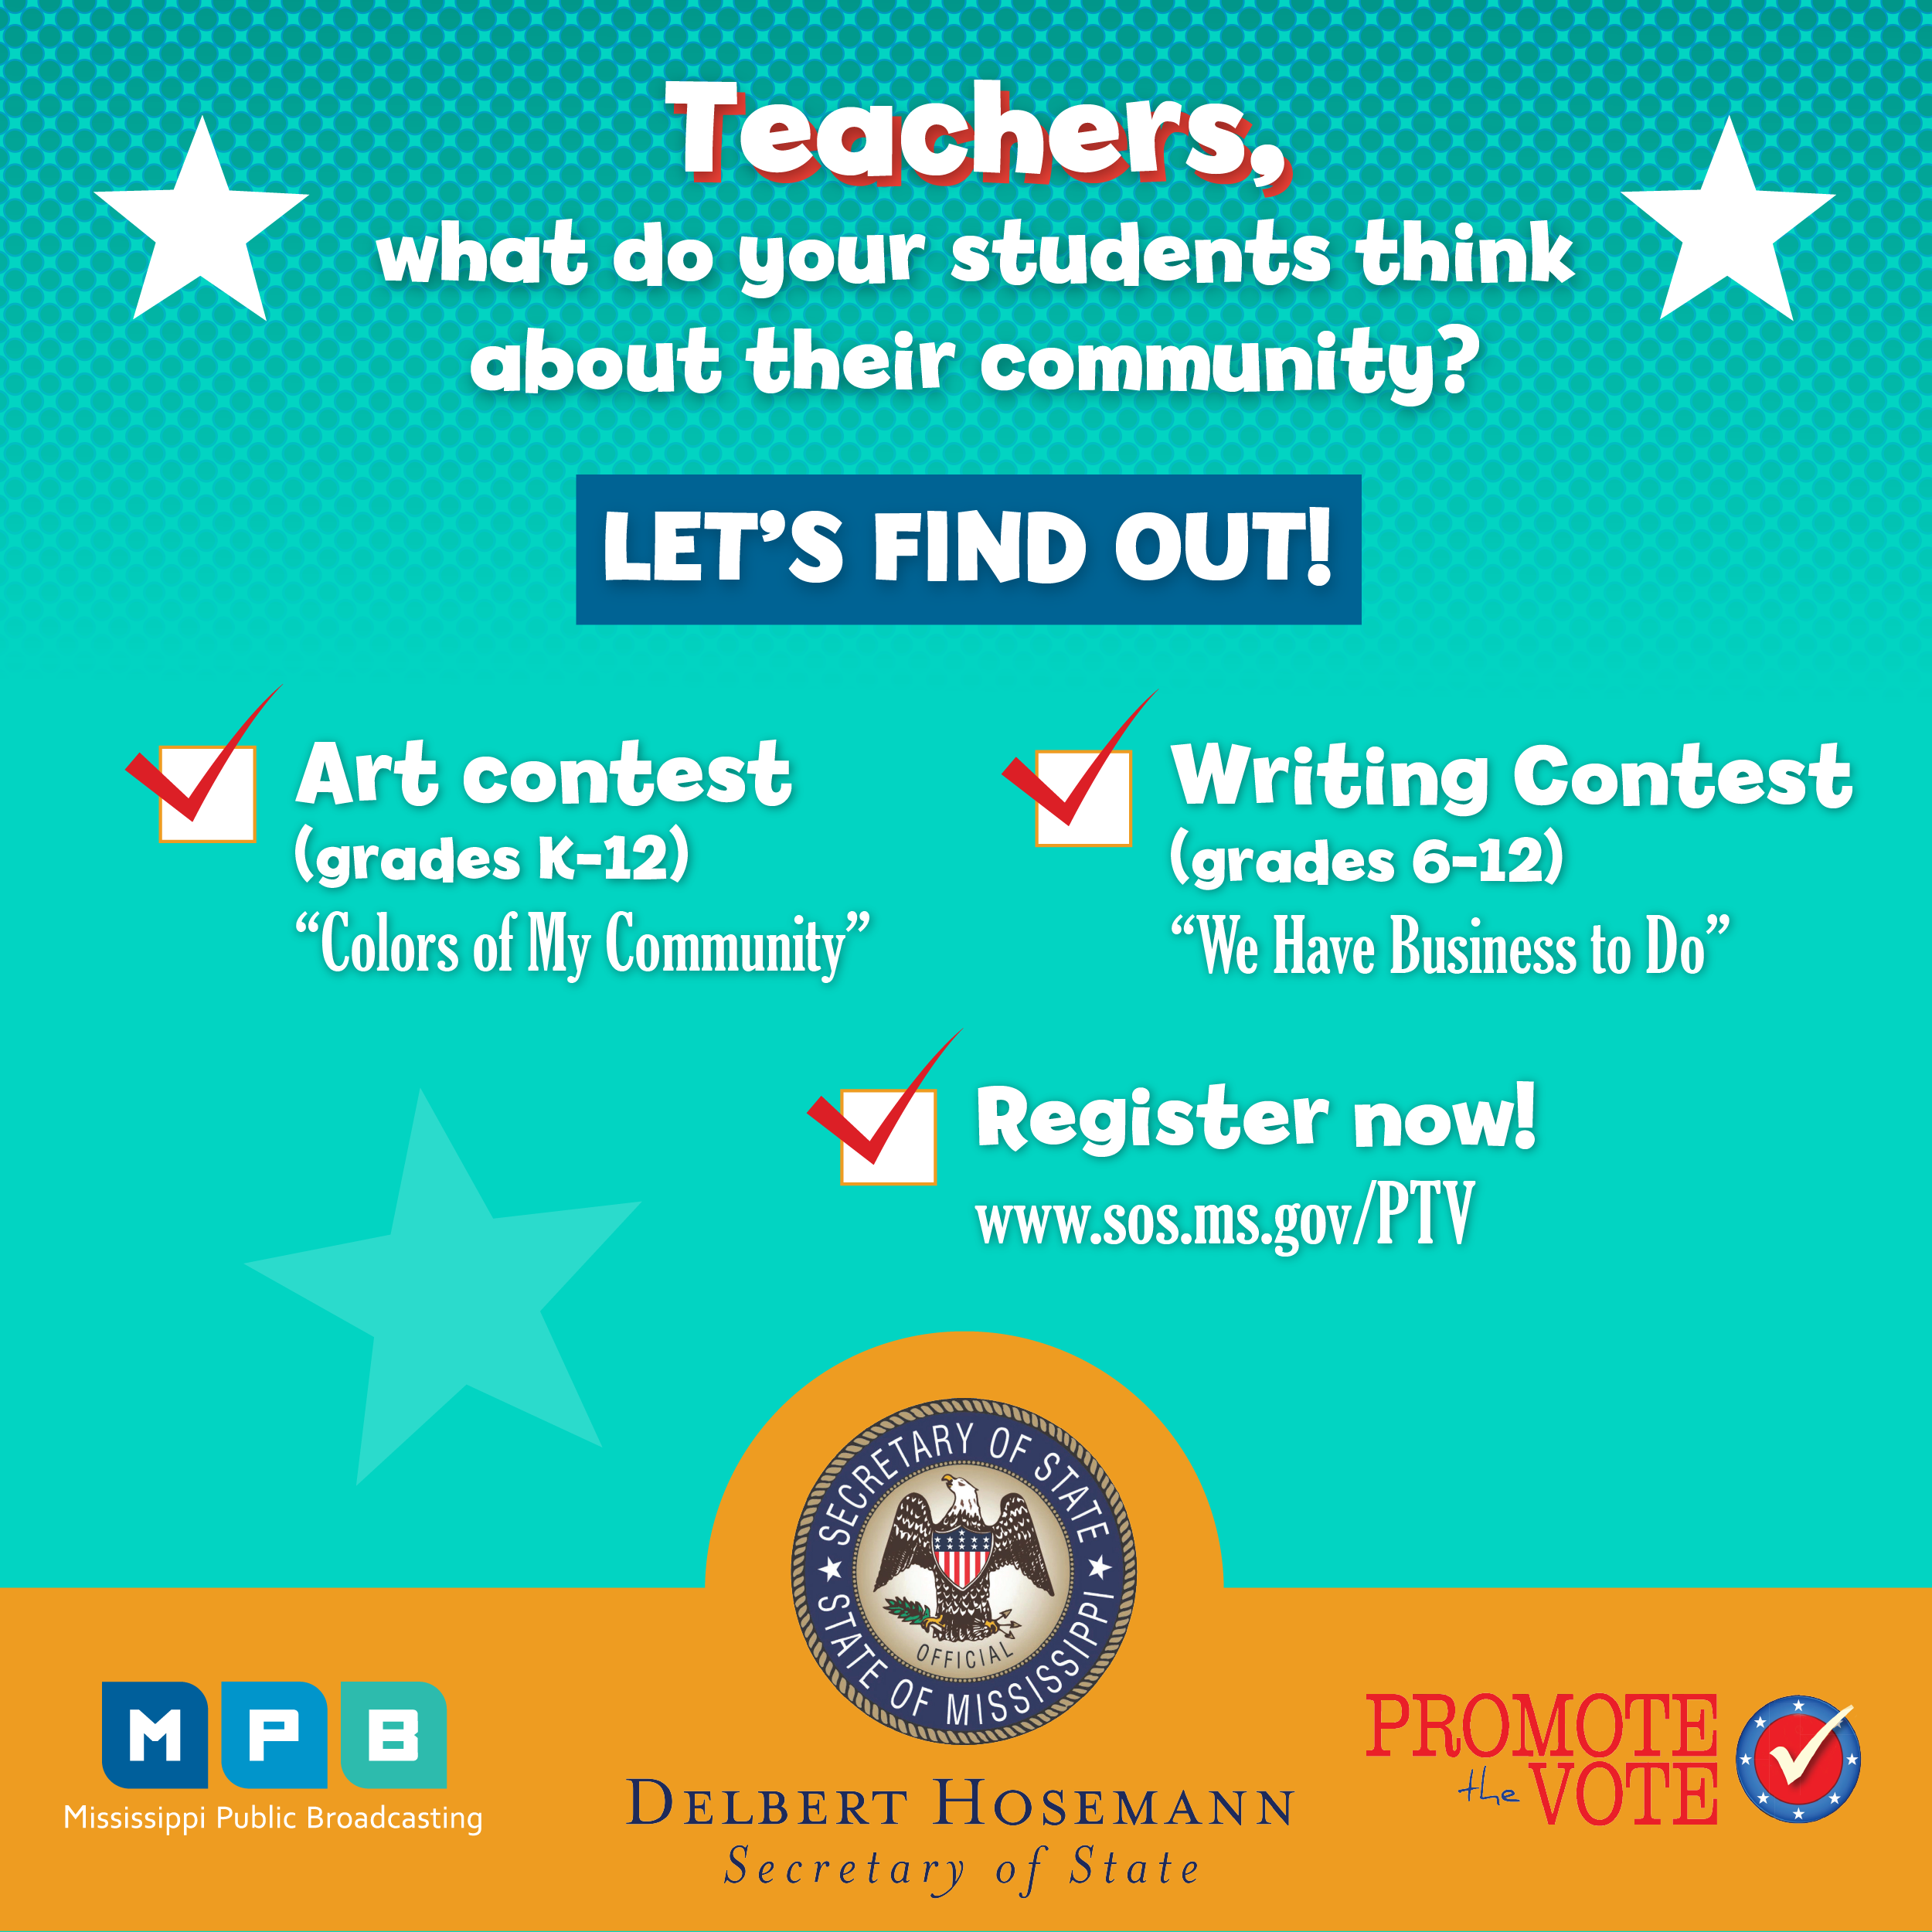 Find out more about the Promote the Vote writing and art contests for students.